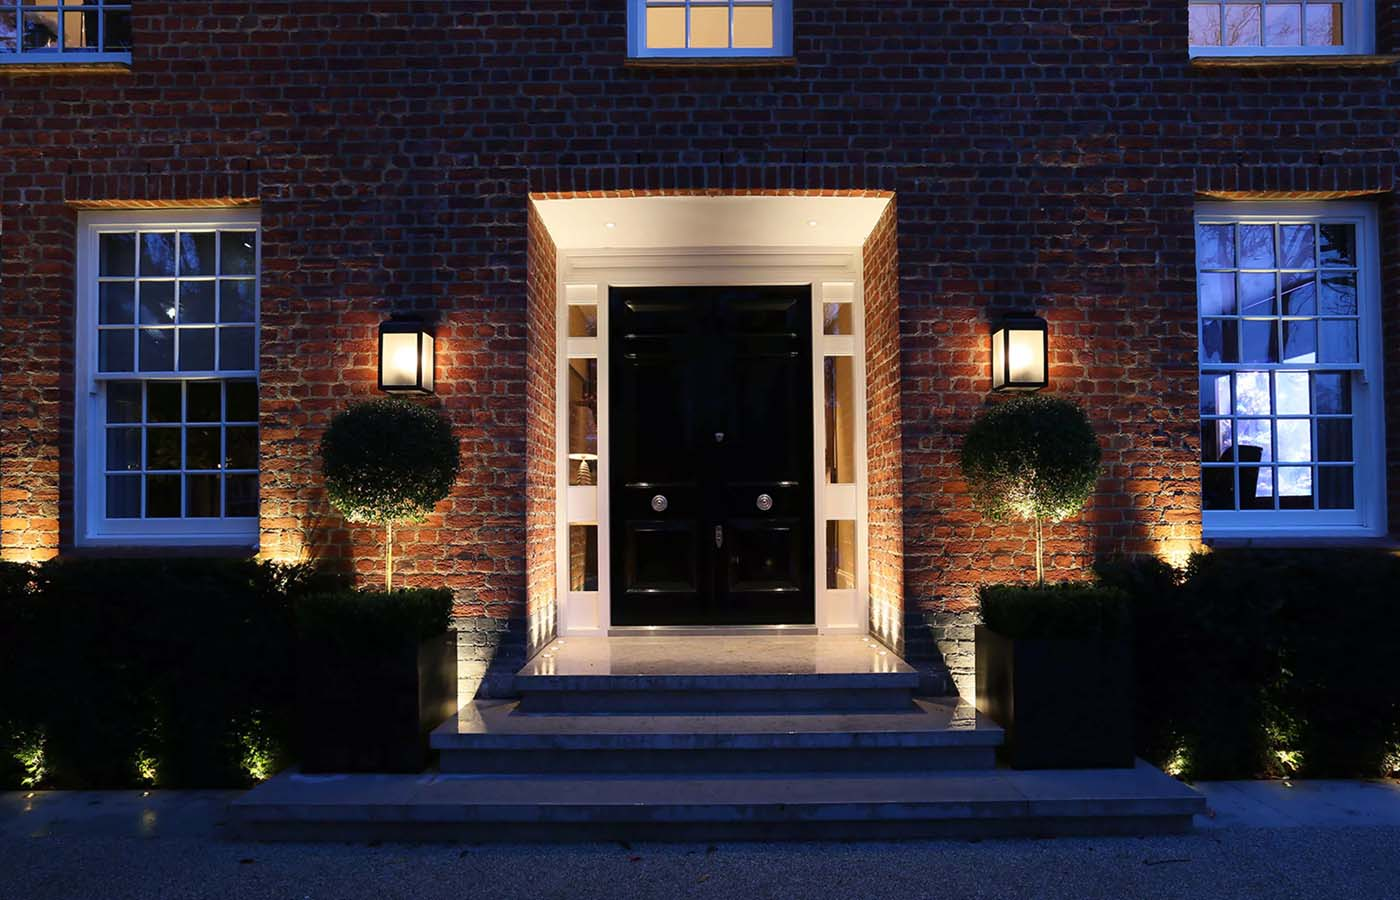 black front door with glass transoms and white trim beautiful landscaping brick house at night